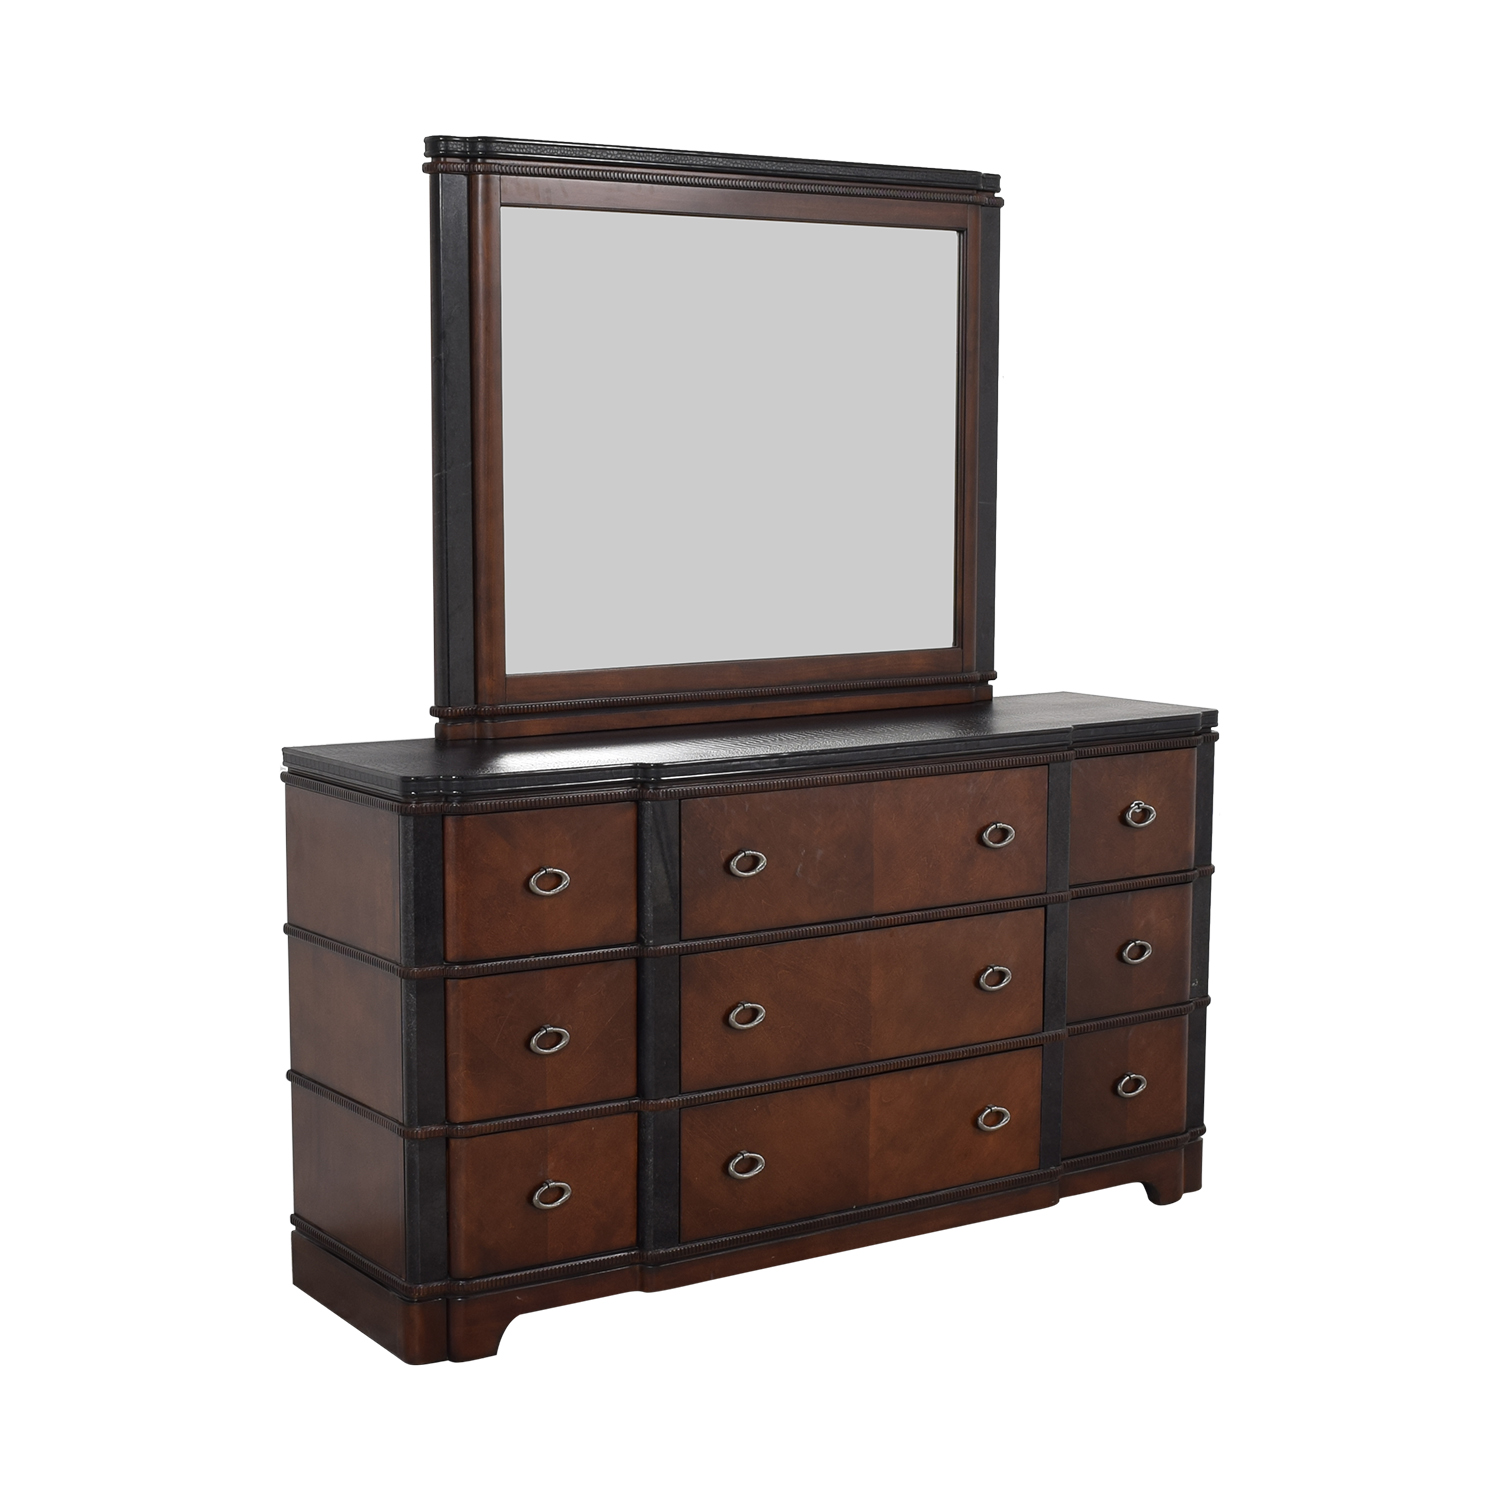 Raymour & Flanigan Raymour & Flanigan Dundee Bedroom Dresser with Mirror used